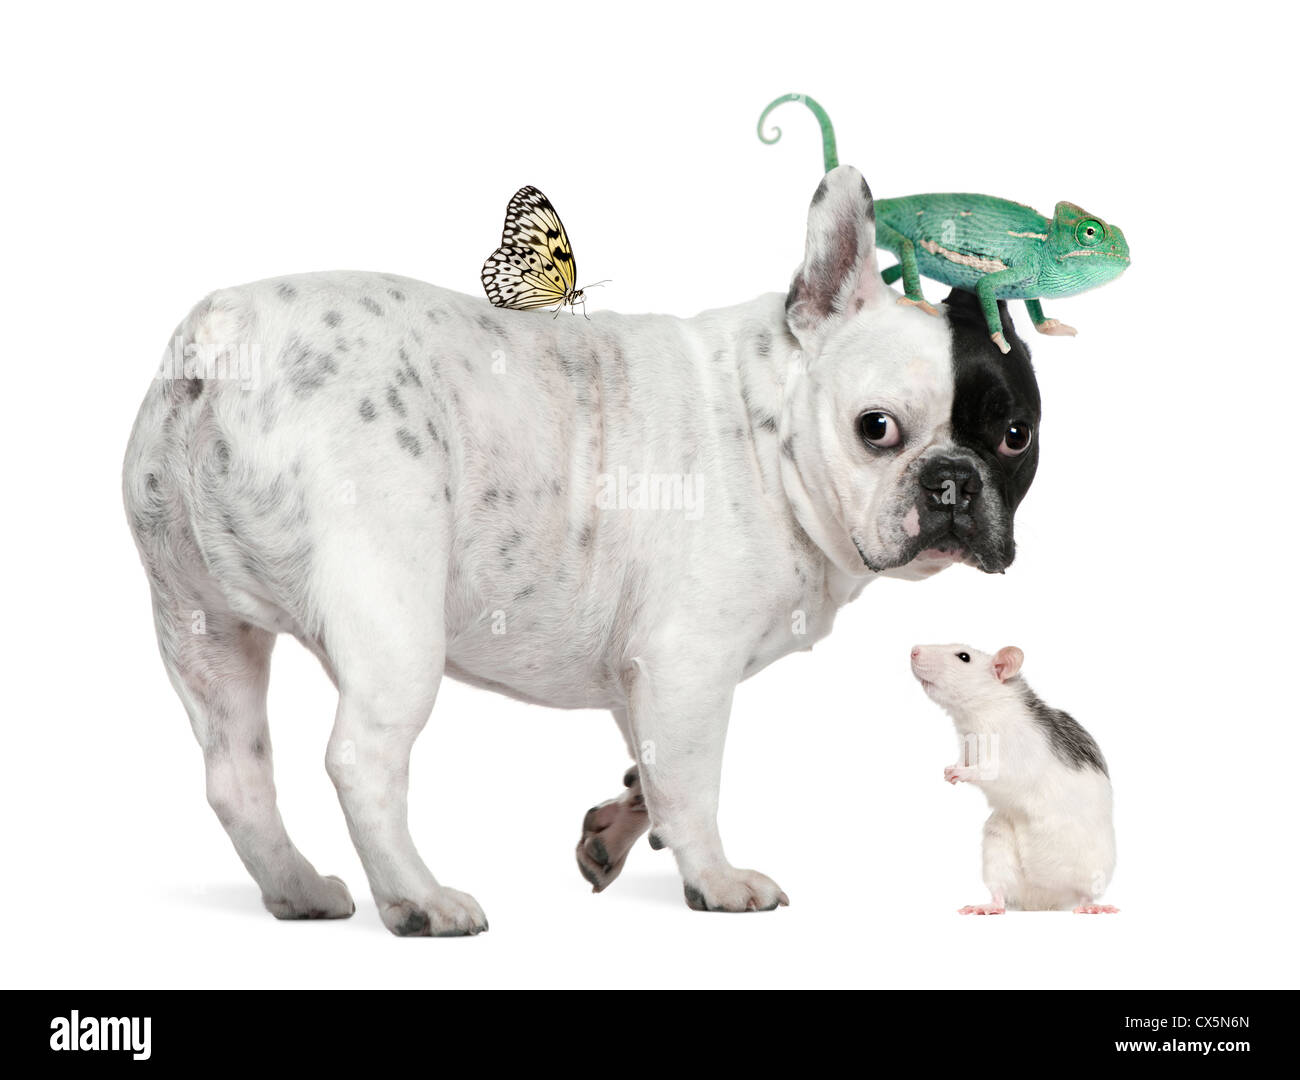 French bulldog with chameleon, rat and butterfly against white background - Stock Image